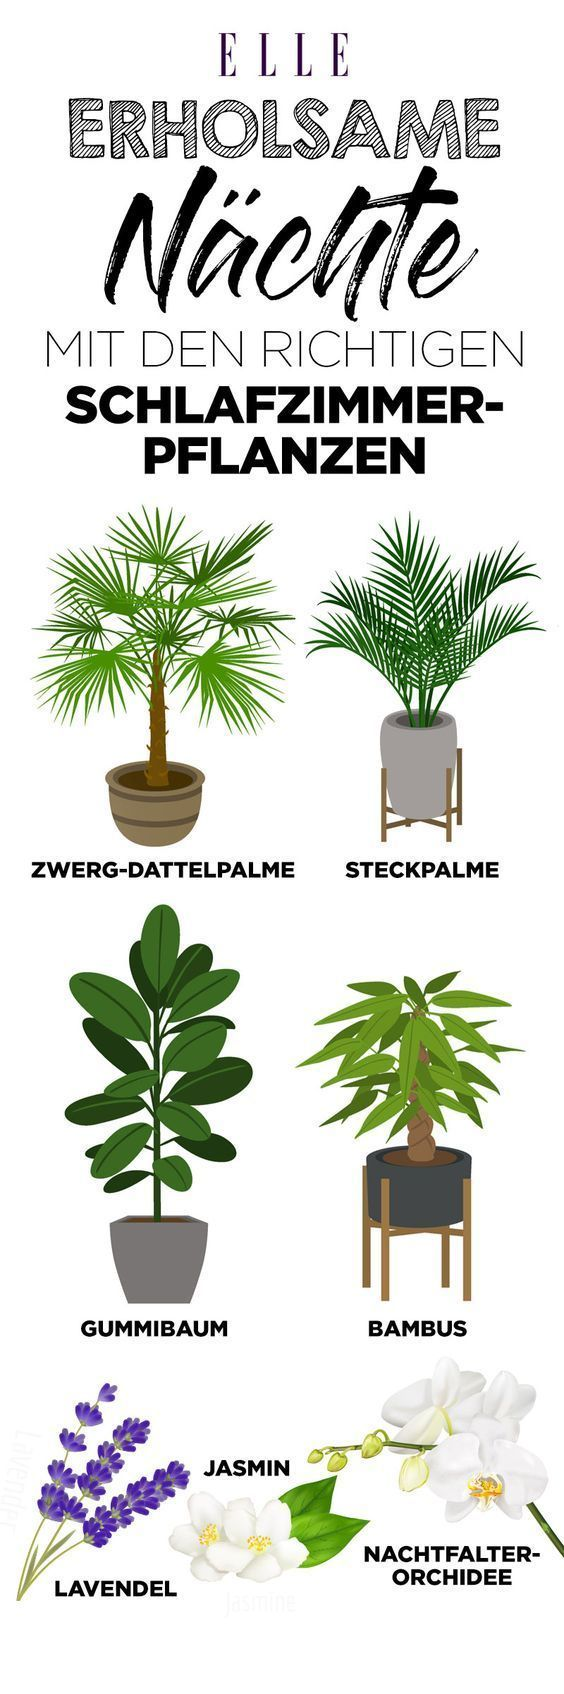 Suling Laing (Following) on Pinterest #plantlife